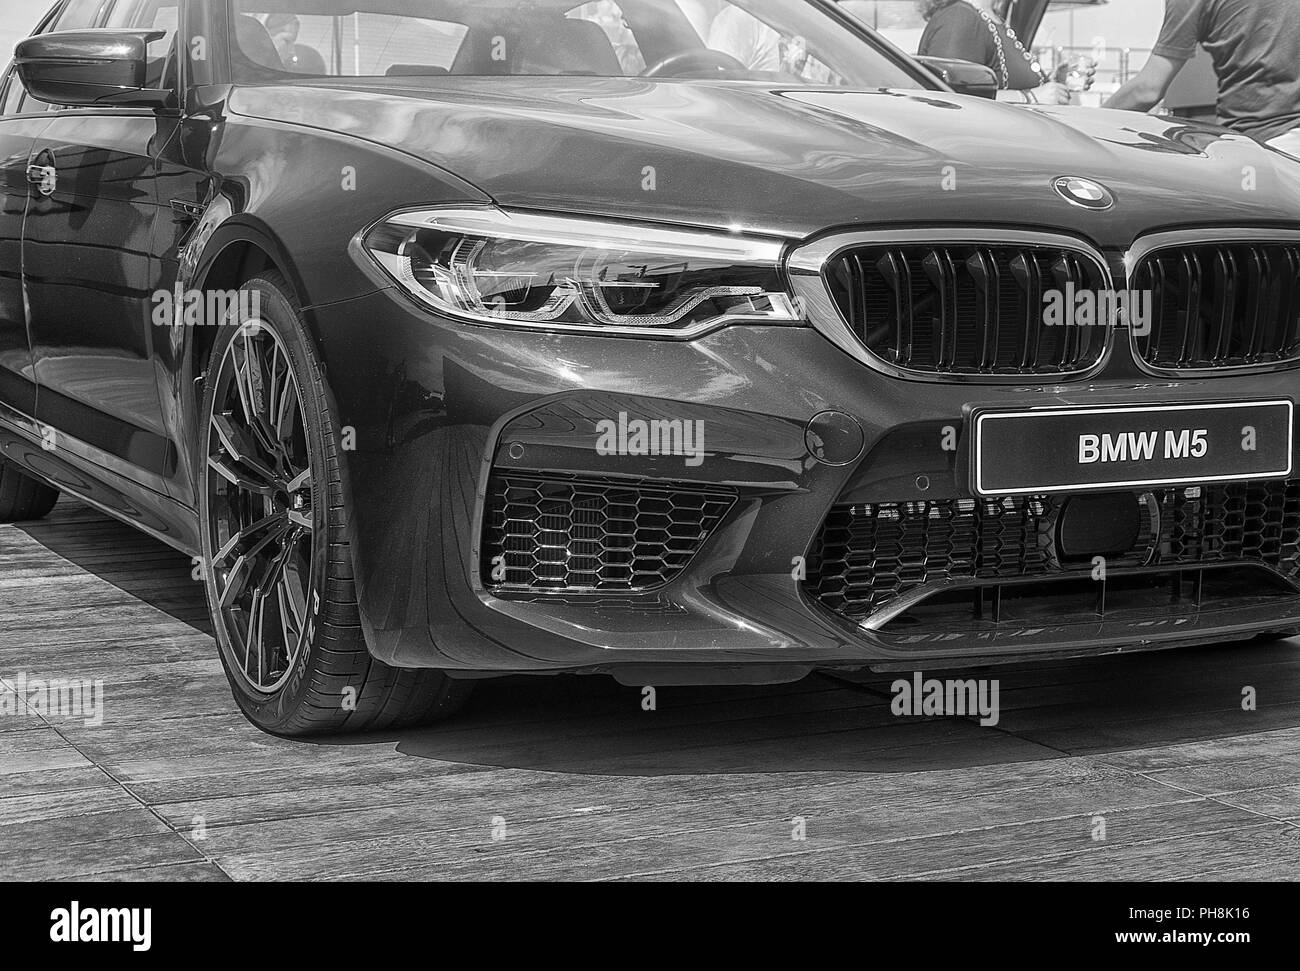 Save Download Preview Italy - porto cervo - August 19, 2018 : front view of the super car BMW M5 on display at Porto Cervo in Sardinia. - Stock Image